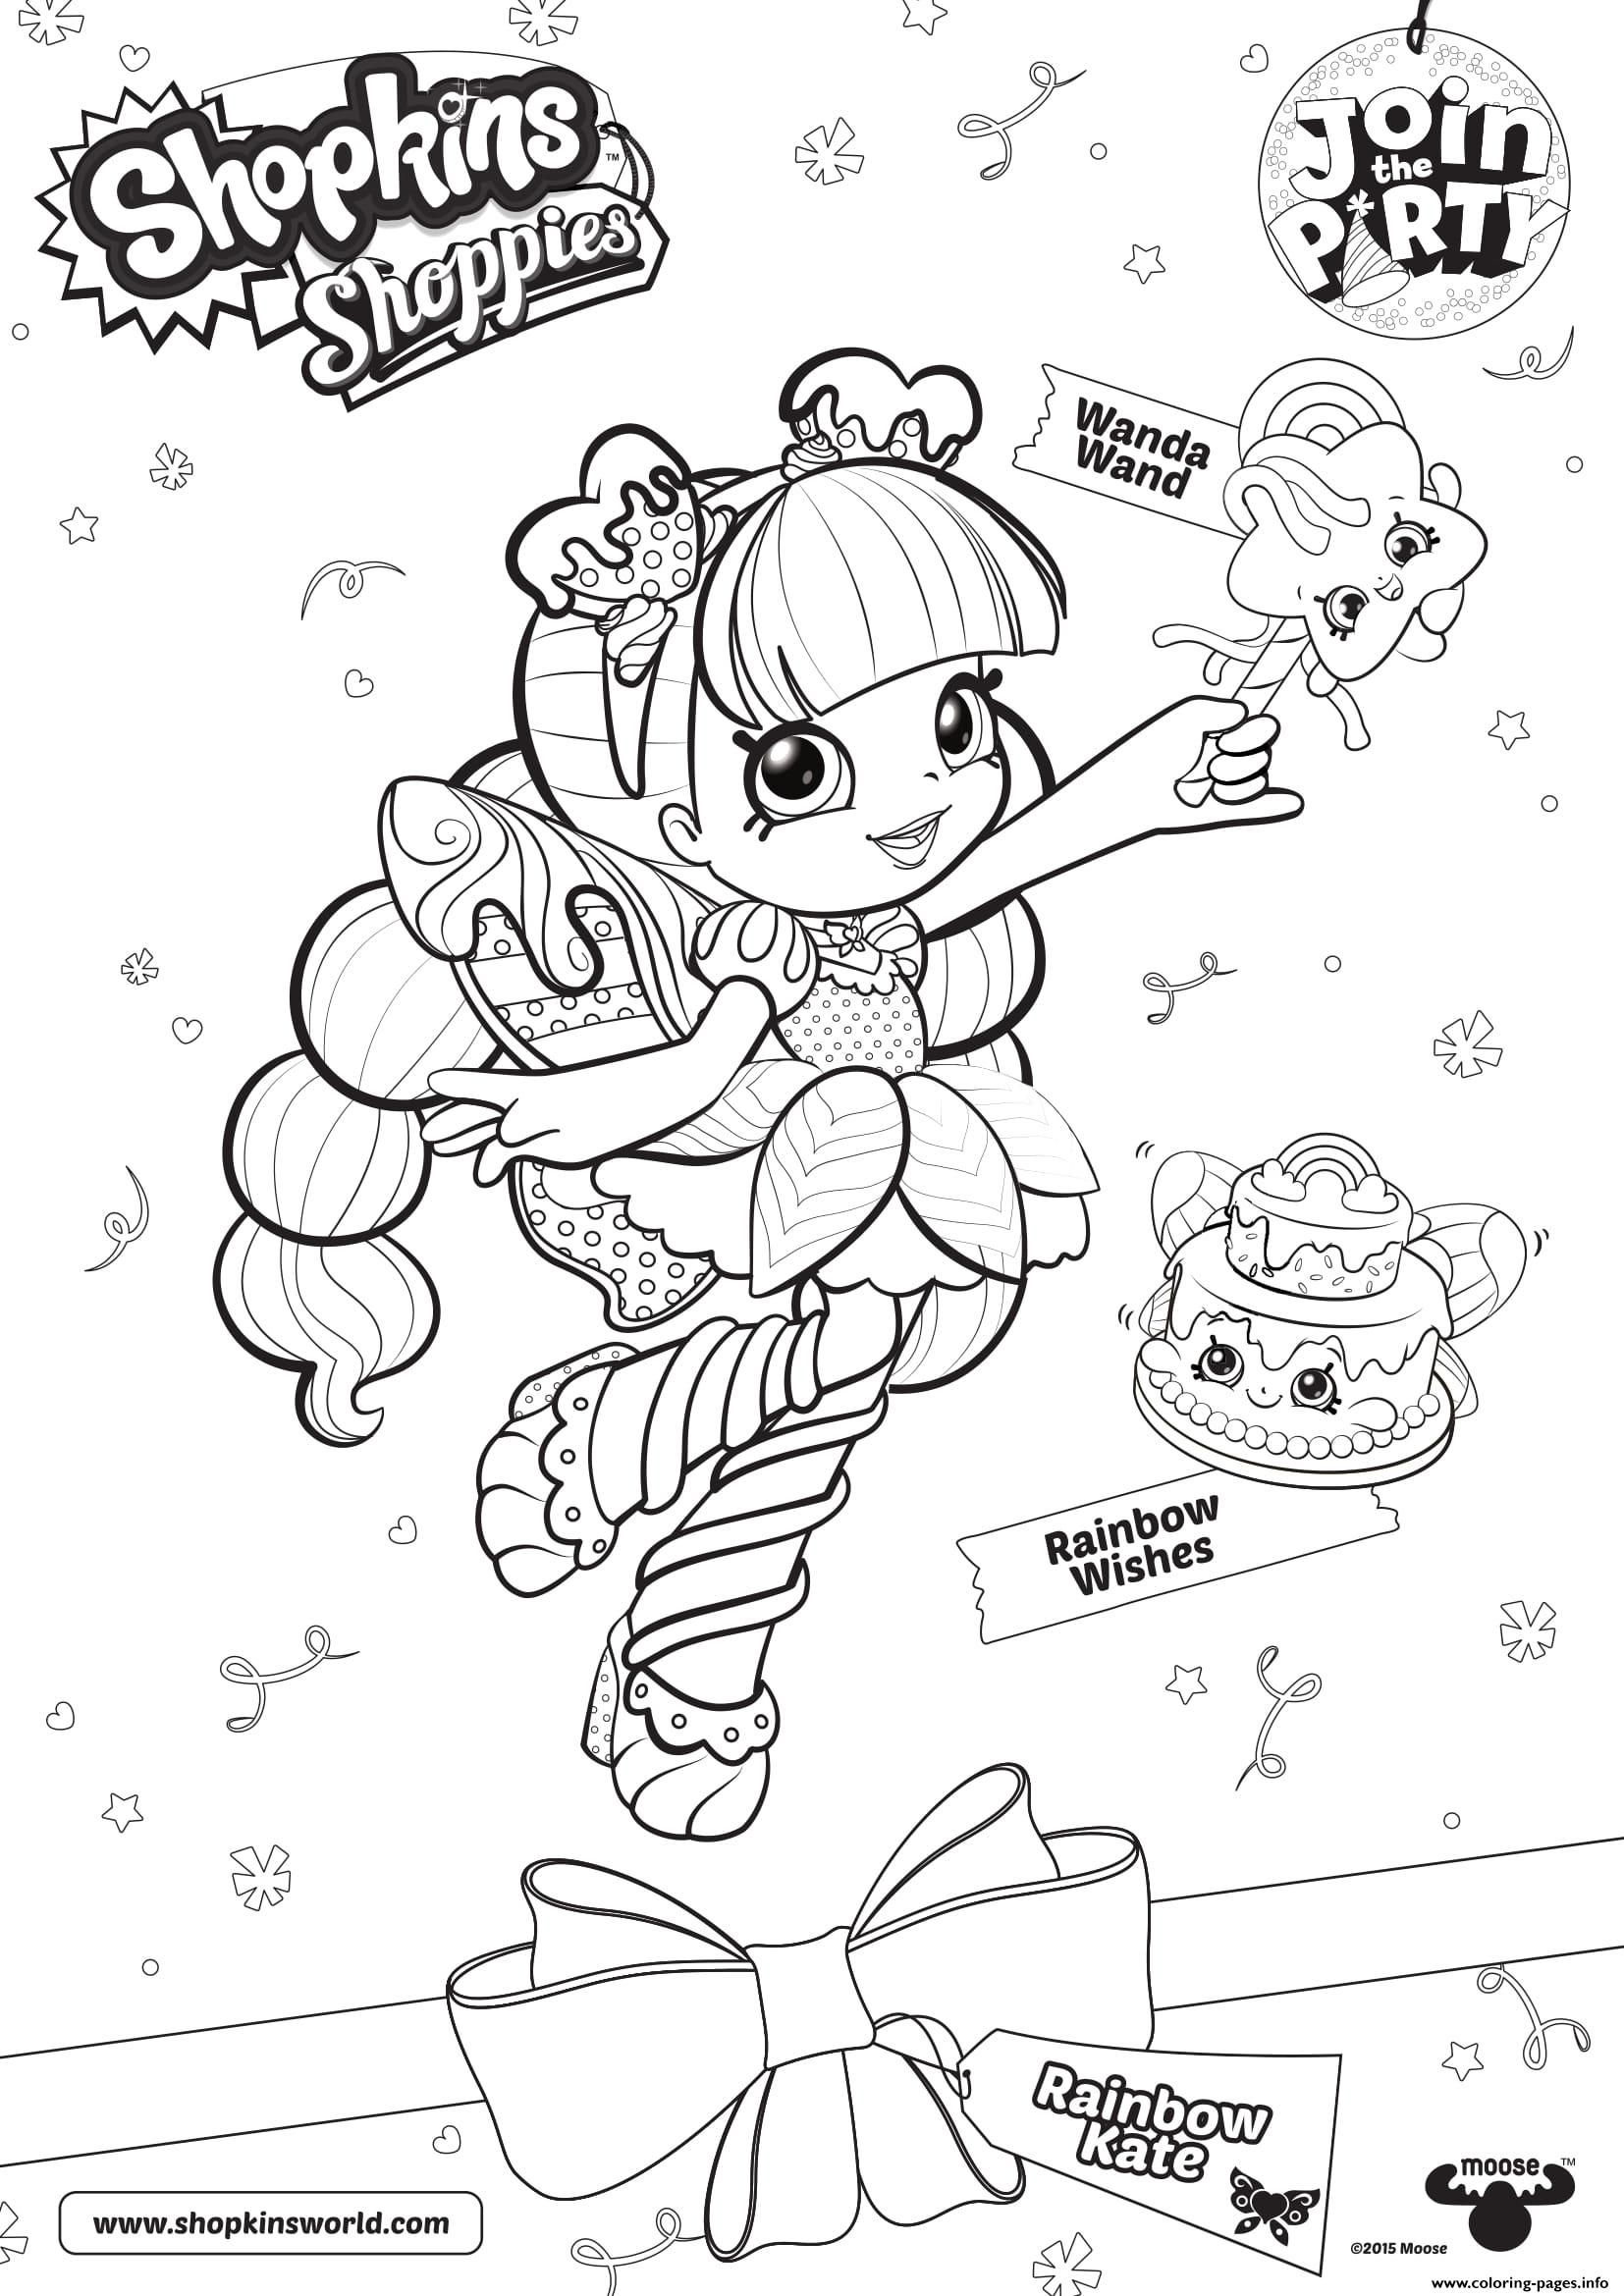 Print Shopkins Shoppies Join The Party Wanda Wand Rainbow Wishes Colorin Shopkin Coloring Pages Shopkins Coloring Pages Free Printable Shopkins Colouring Pages